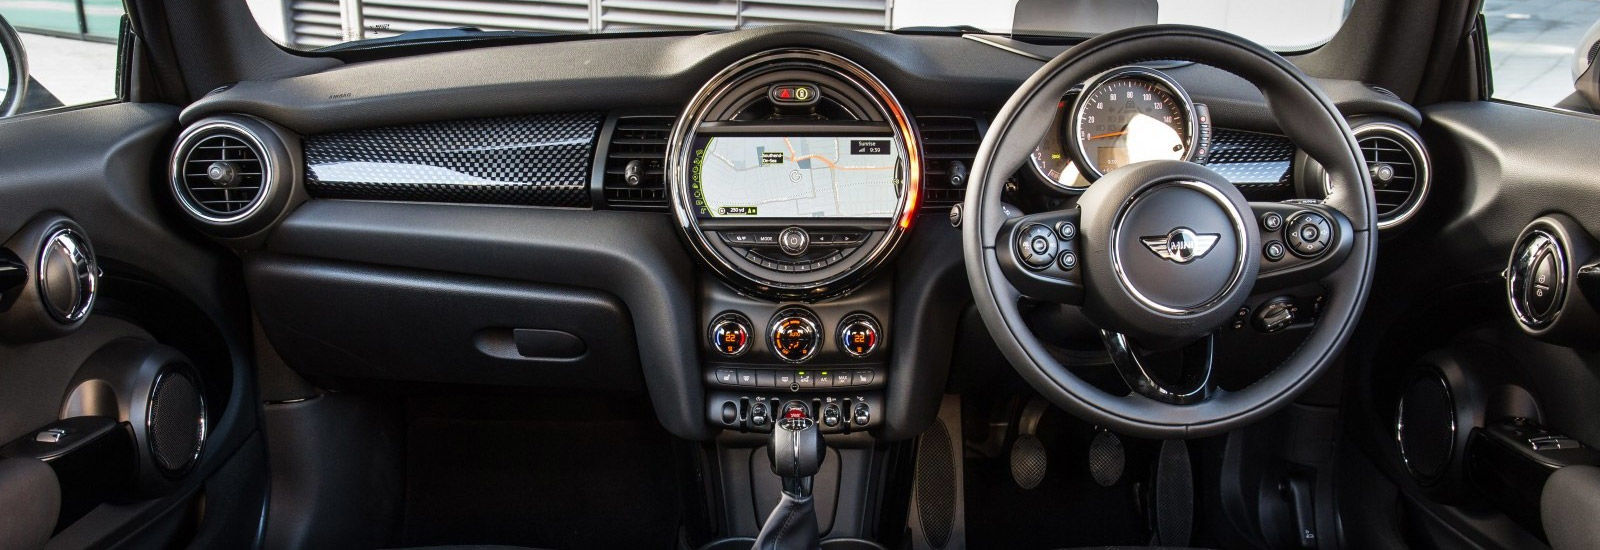 Mini Hatchback Interior Dimensions